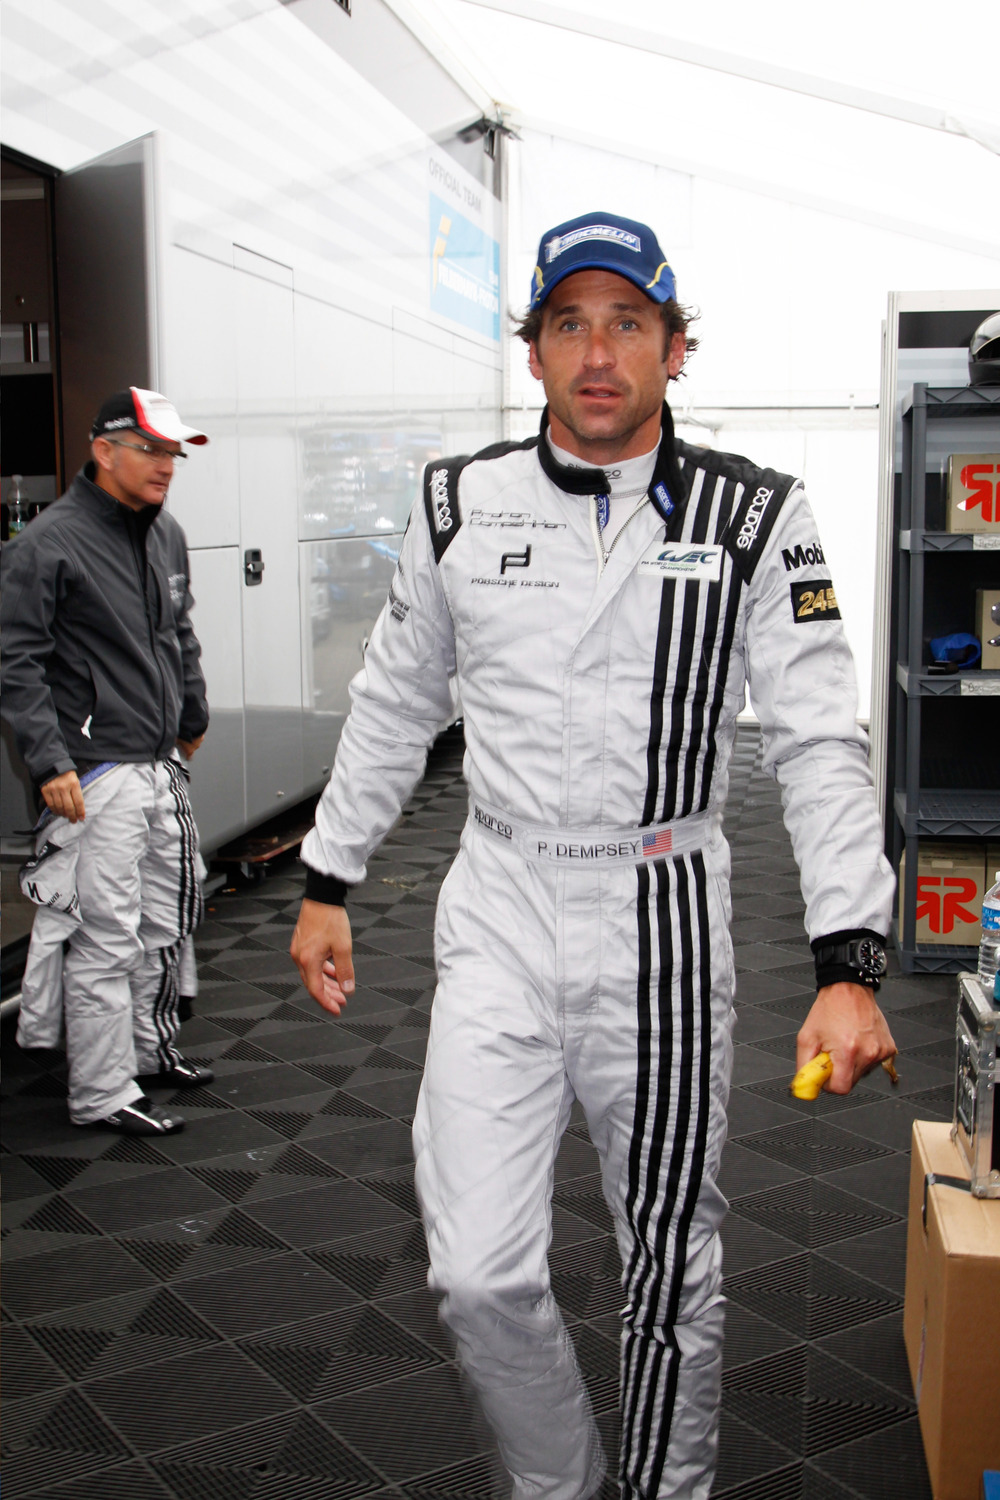 Patrick Dempsey Shows Off Racing Skills on Good Morning America (VIDEO)